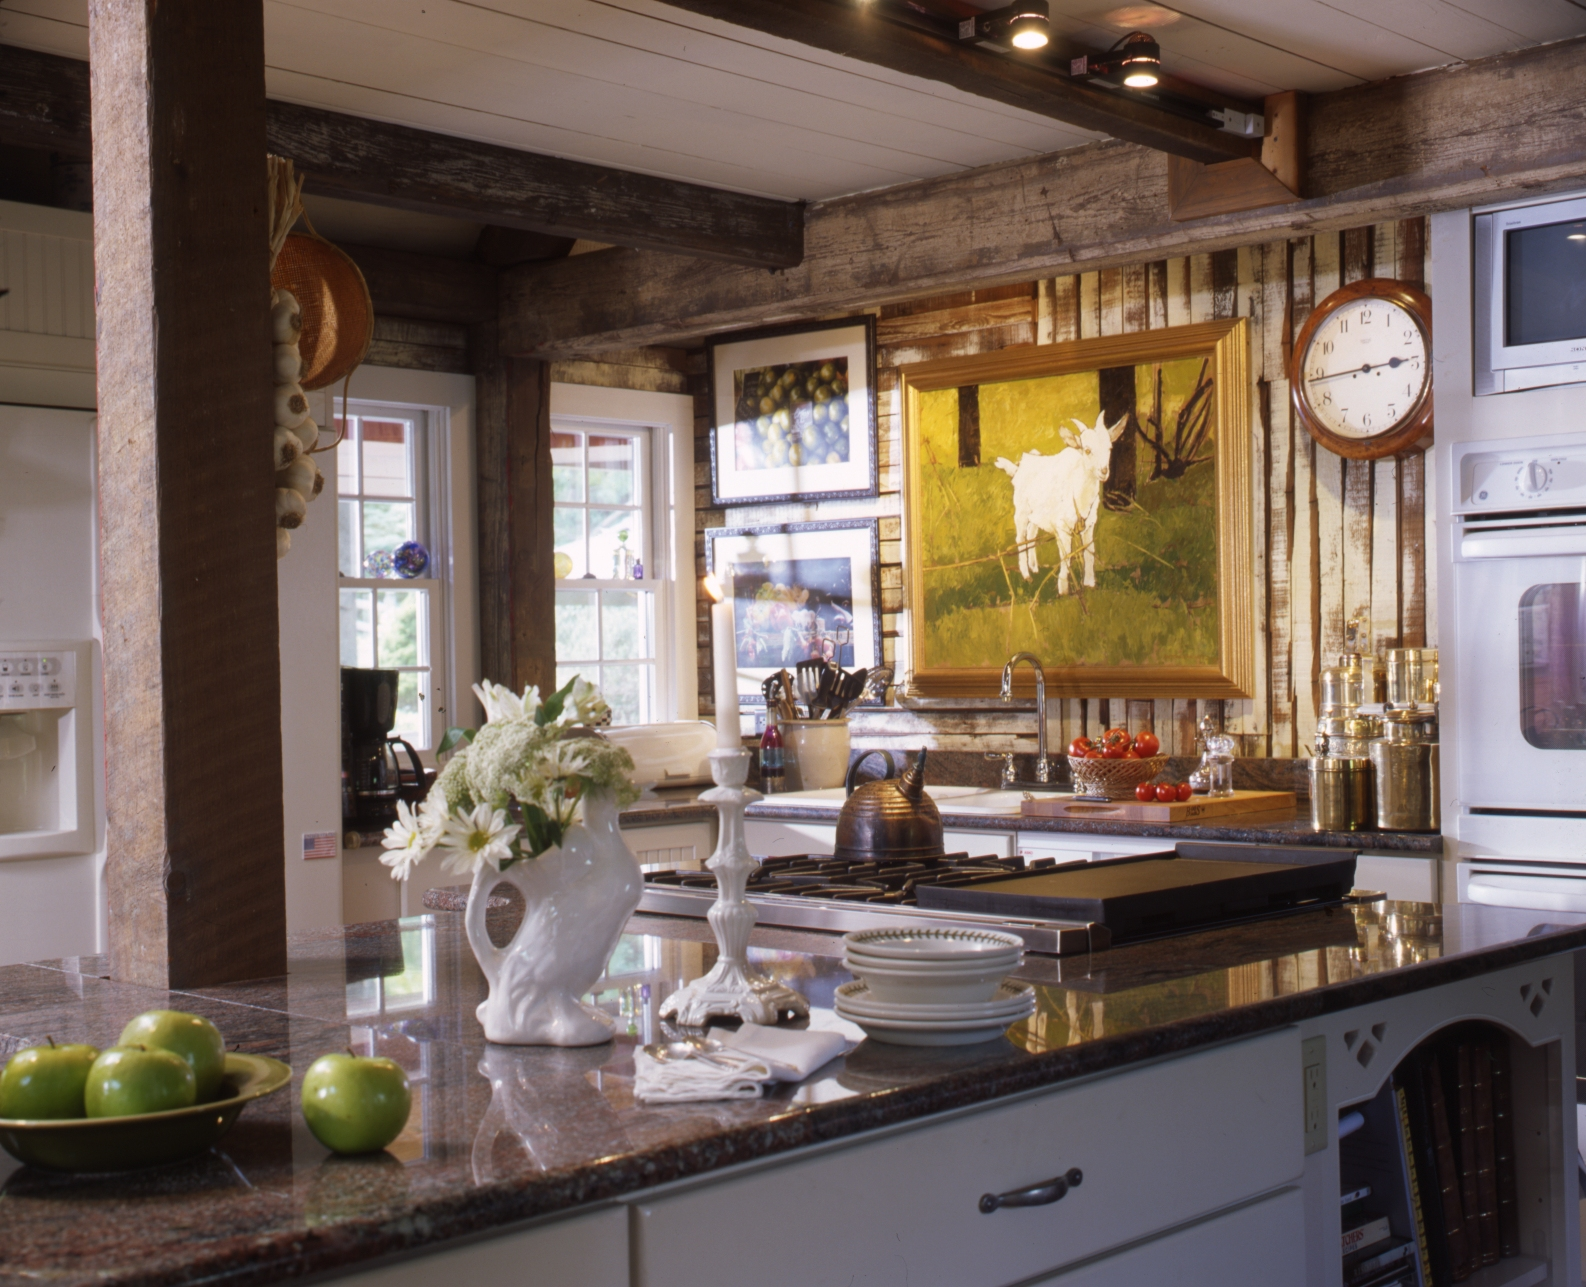 Images Of French Country Kitchens | Home Design, Decorating and